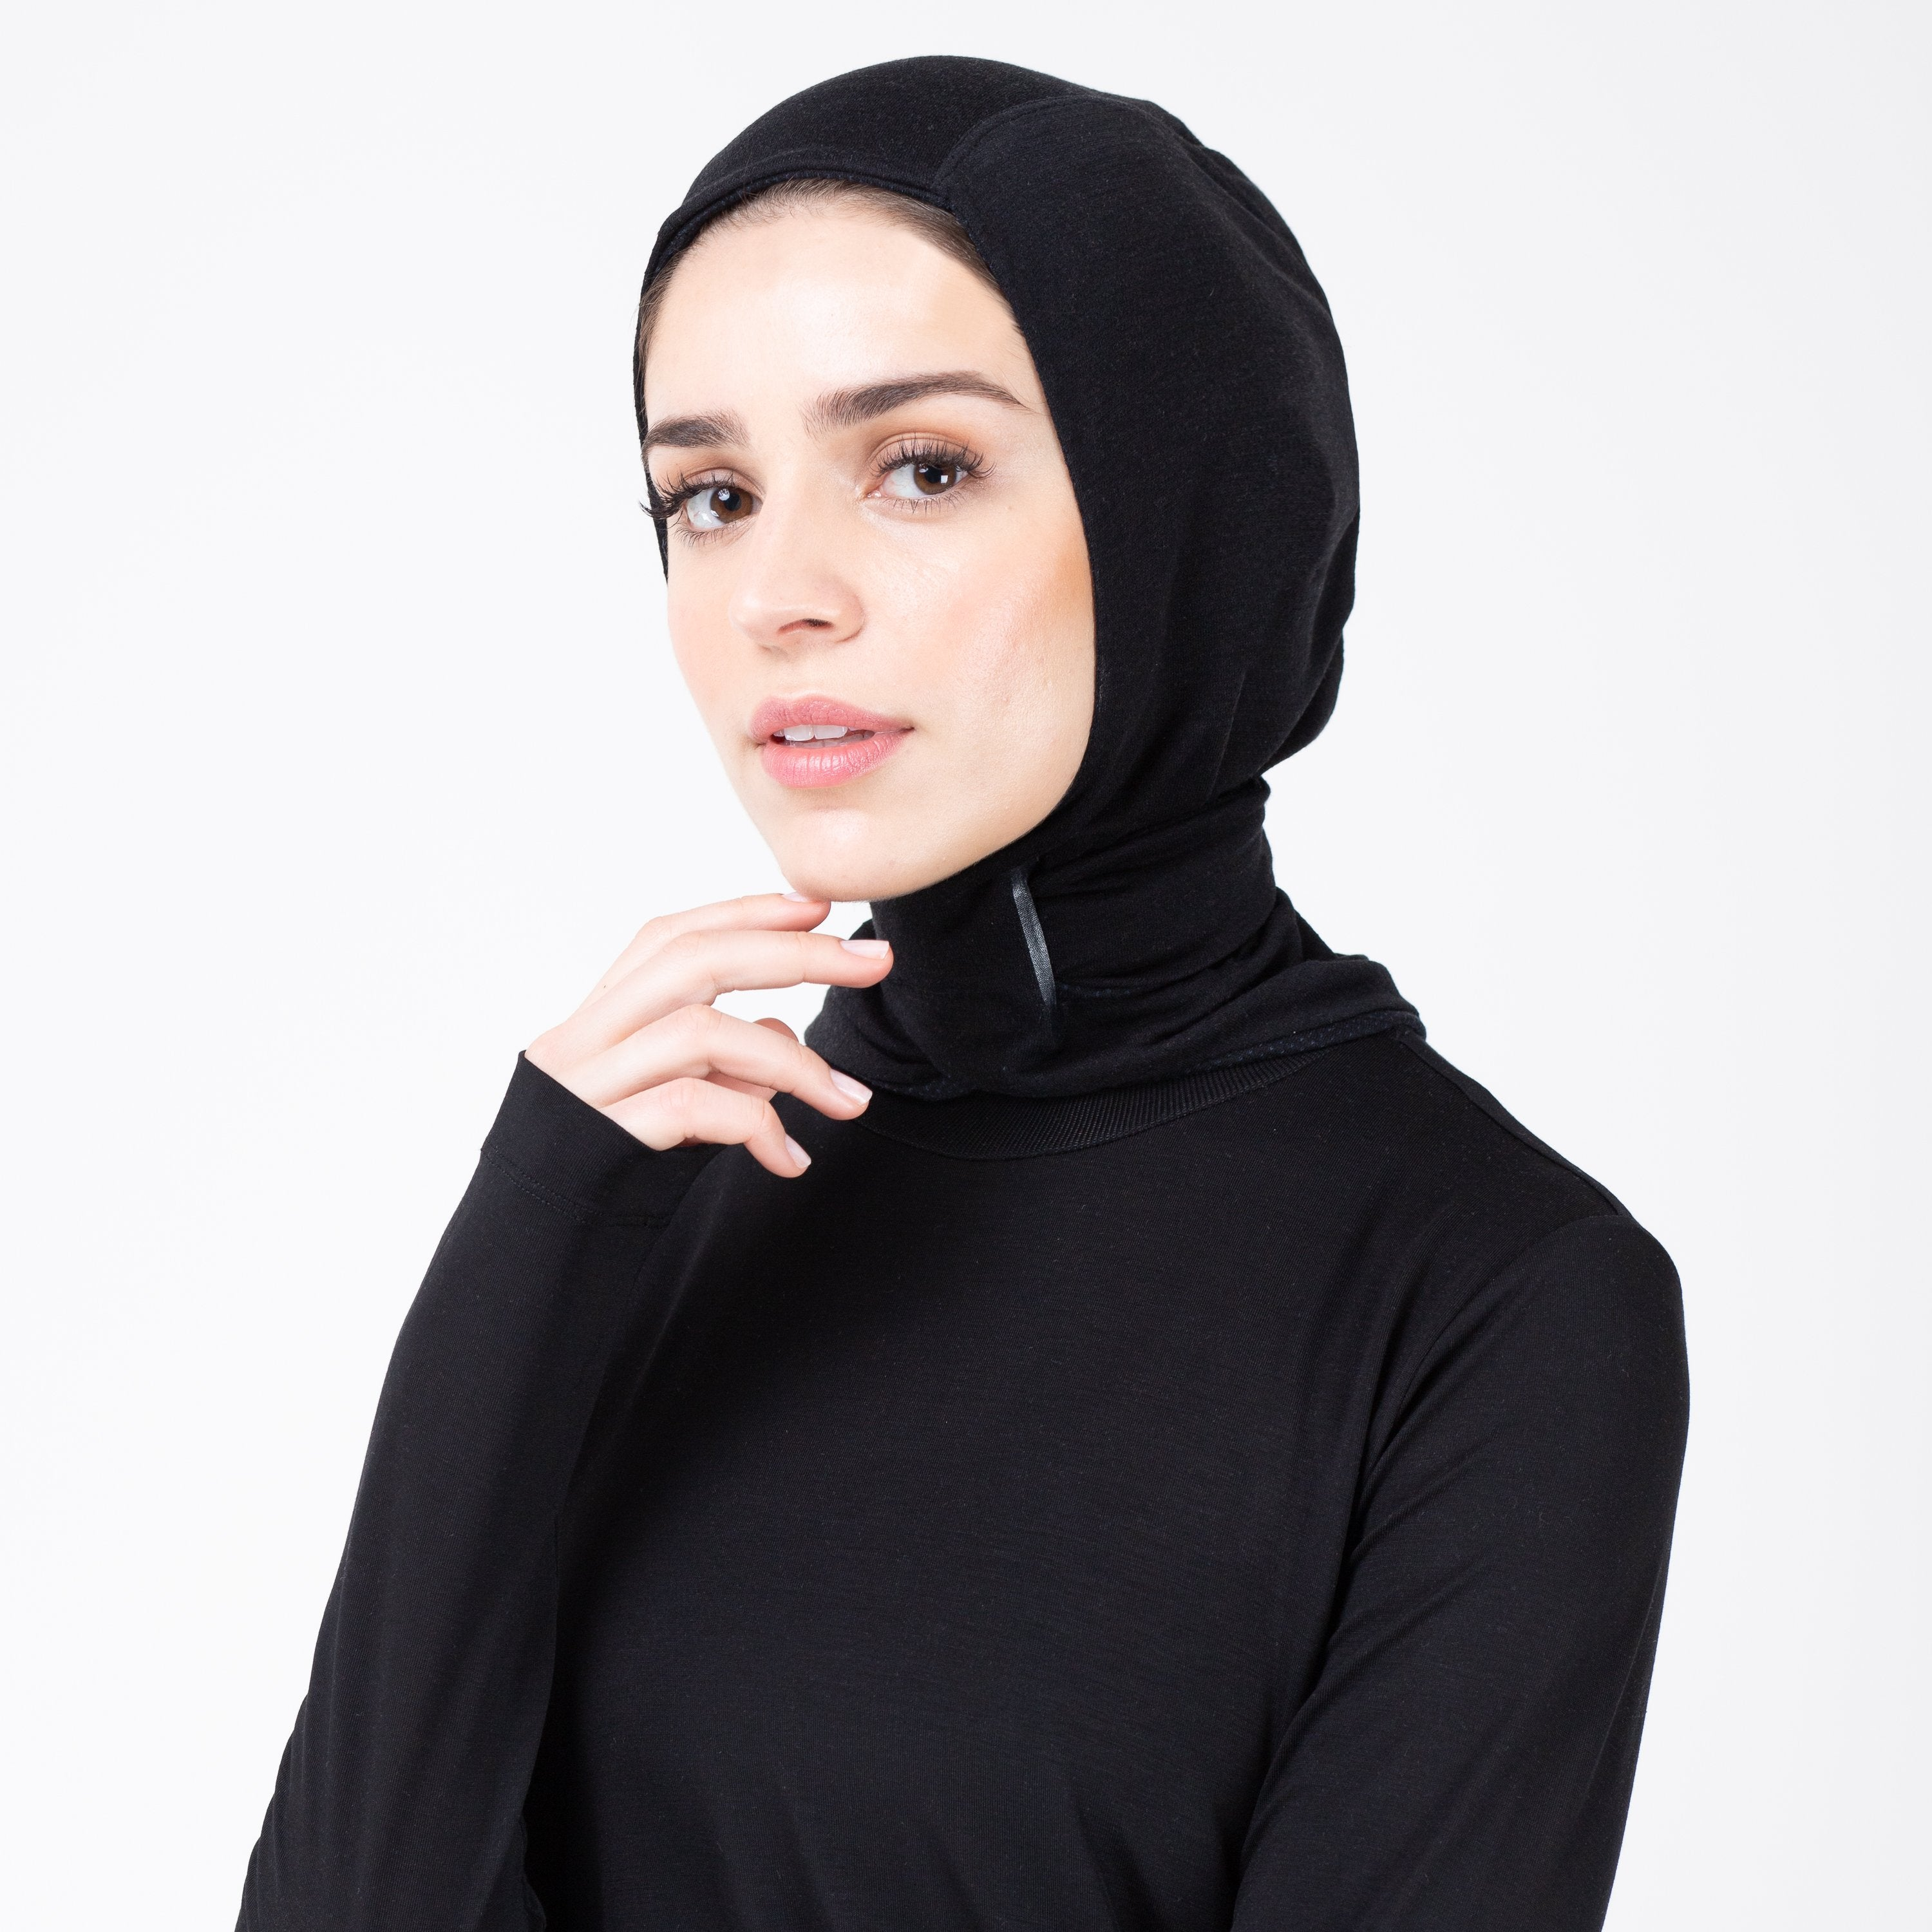 Woman facing left in black shirt and matching black HAWA hijab touching her face.